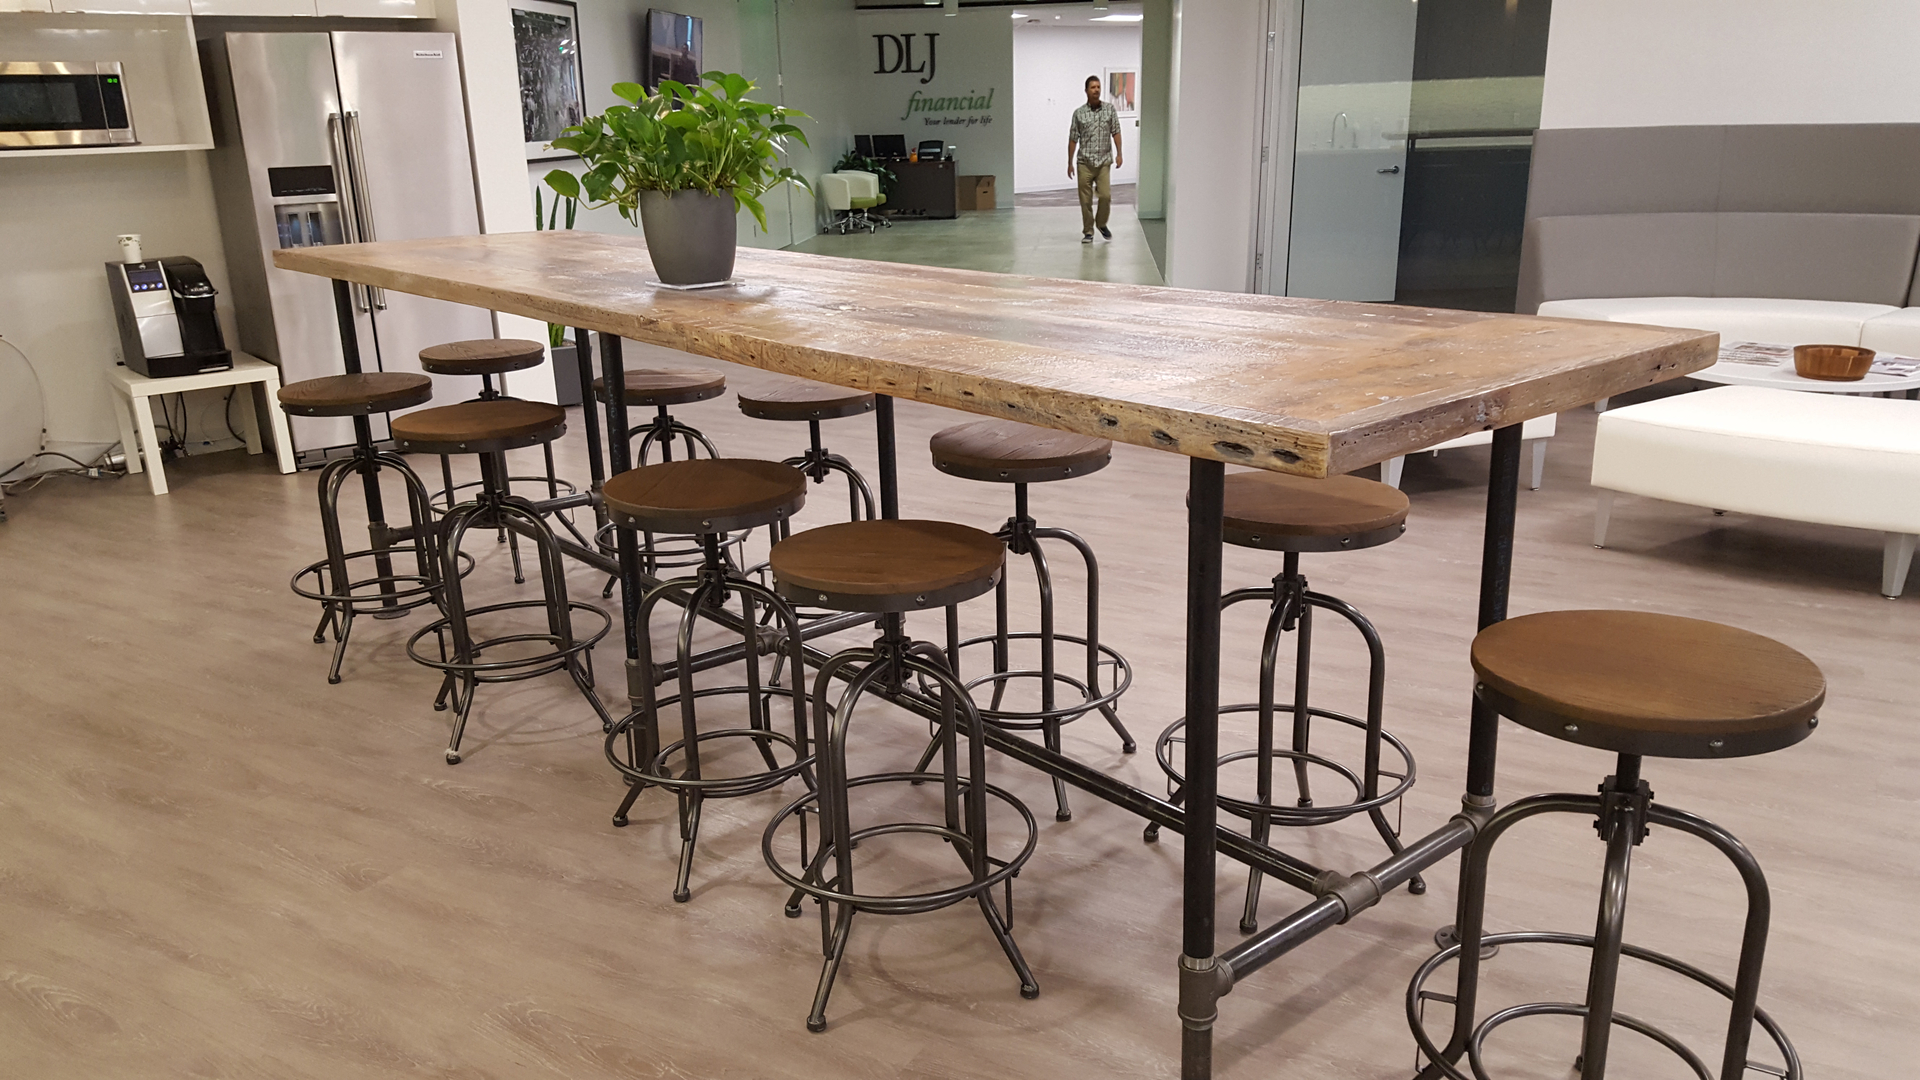 Fresh Restorations Reclaimed Wood Dining Table Tops Are Made By Hand Skilled Carpenters